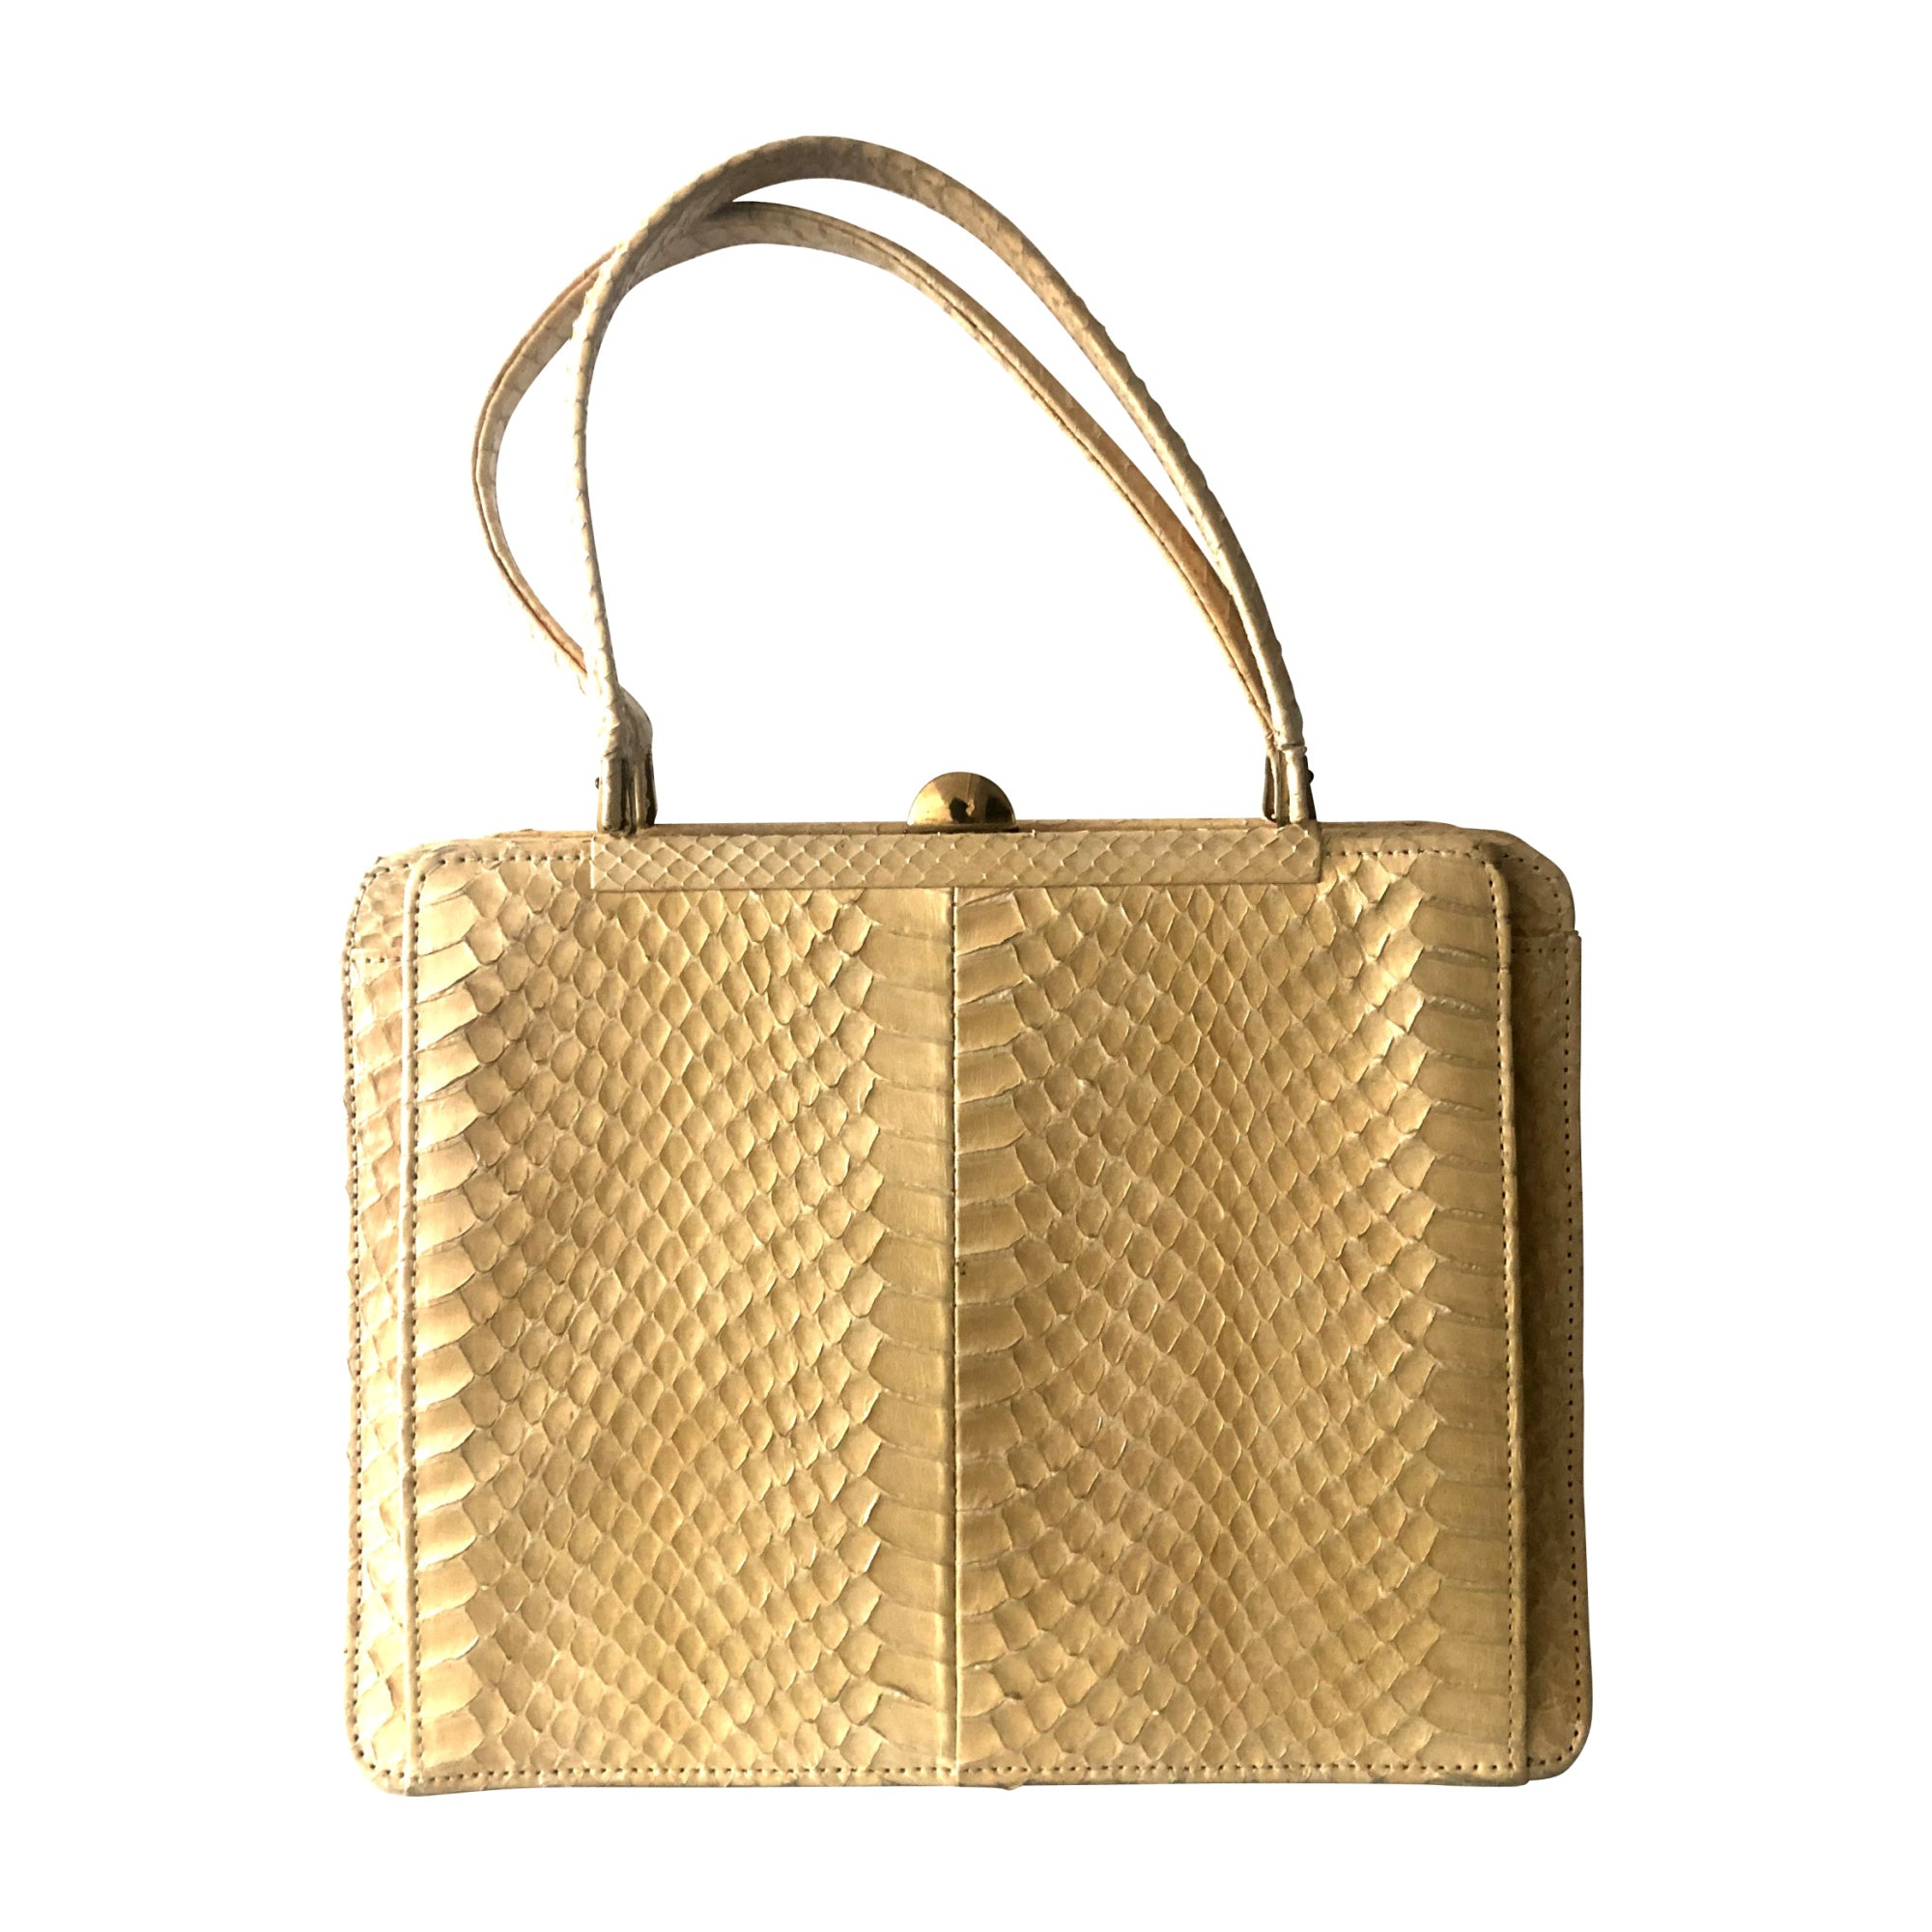 Beige Vintage Python Leather Handbag